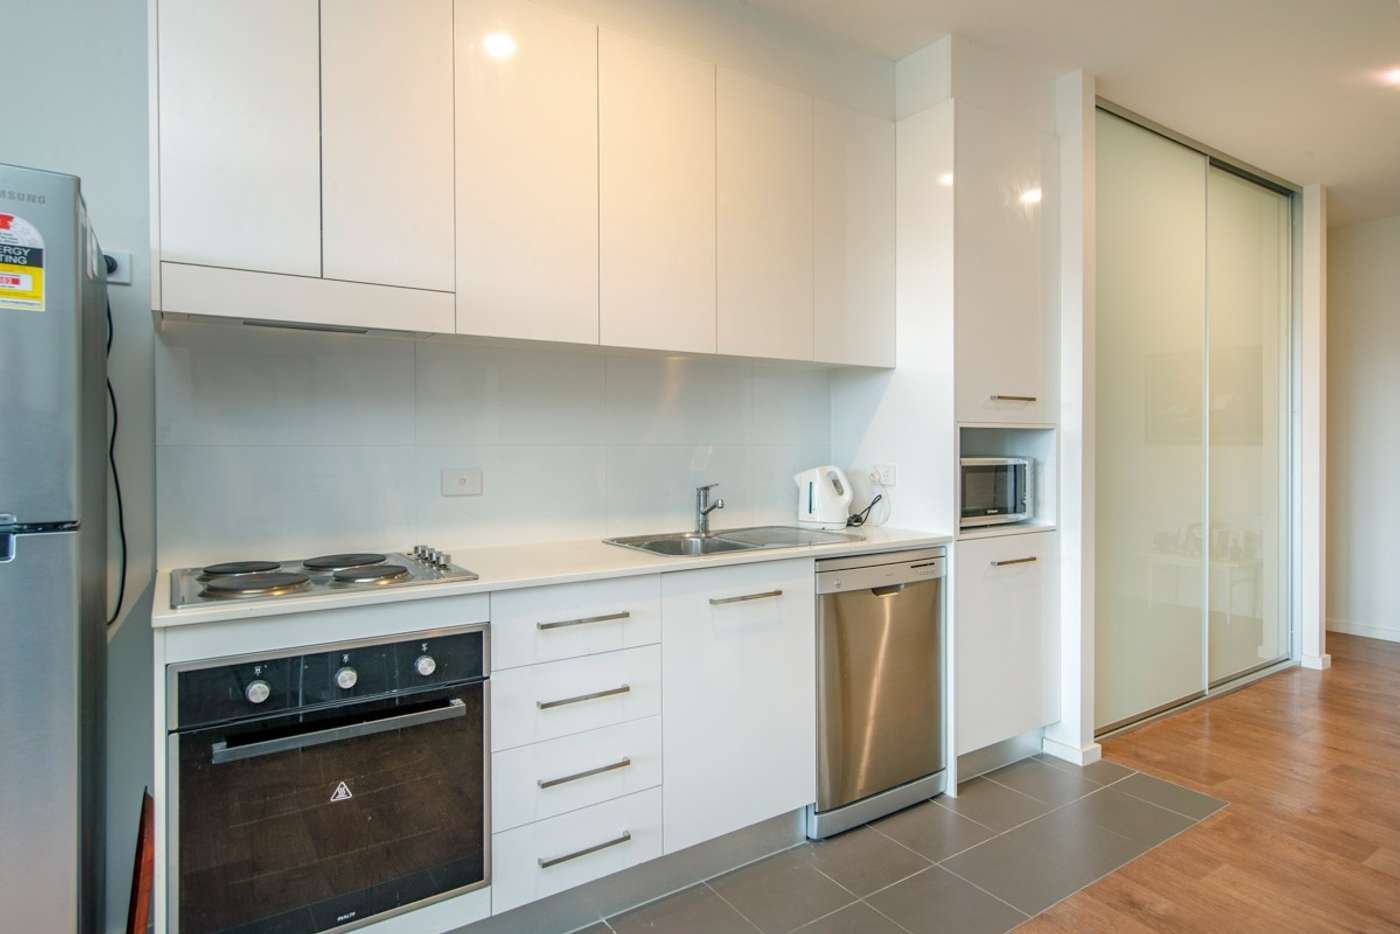 Fifth view of Homely apartment listing, 402/6 Charles Street, Charlestown NSW 2290